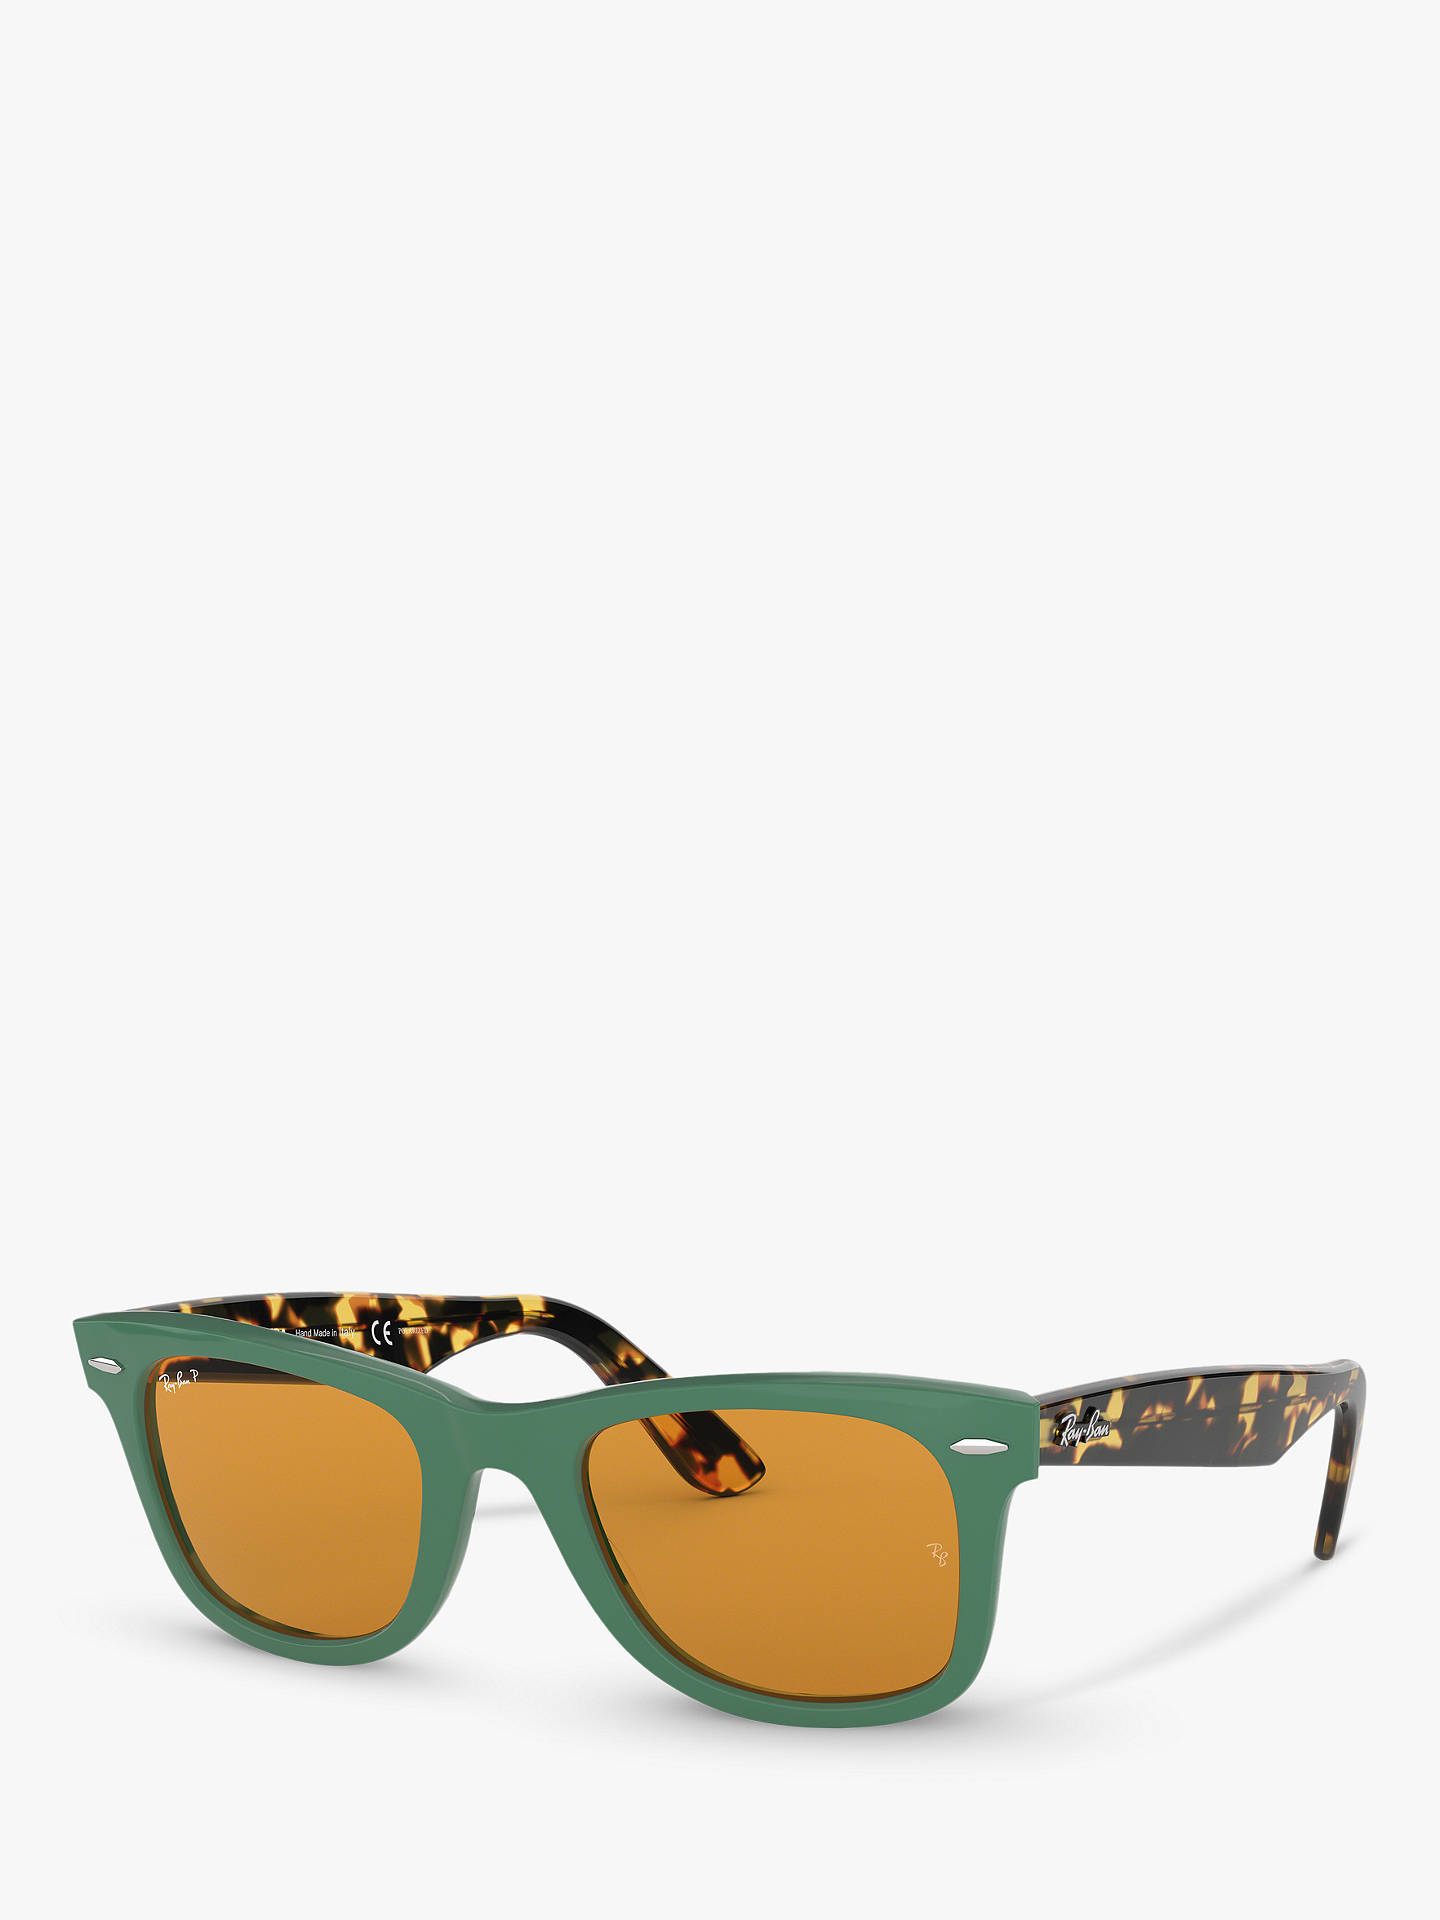 c9f0fb8f9f94 Buy Ray-Ban RB2140 Women s Original Wayfarer Polarised Sunglasses